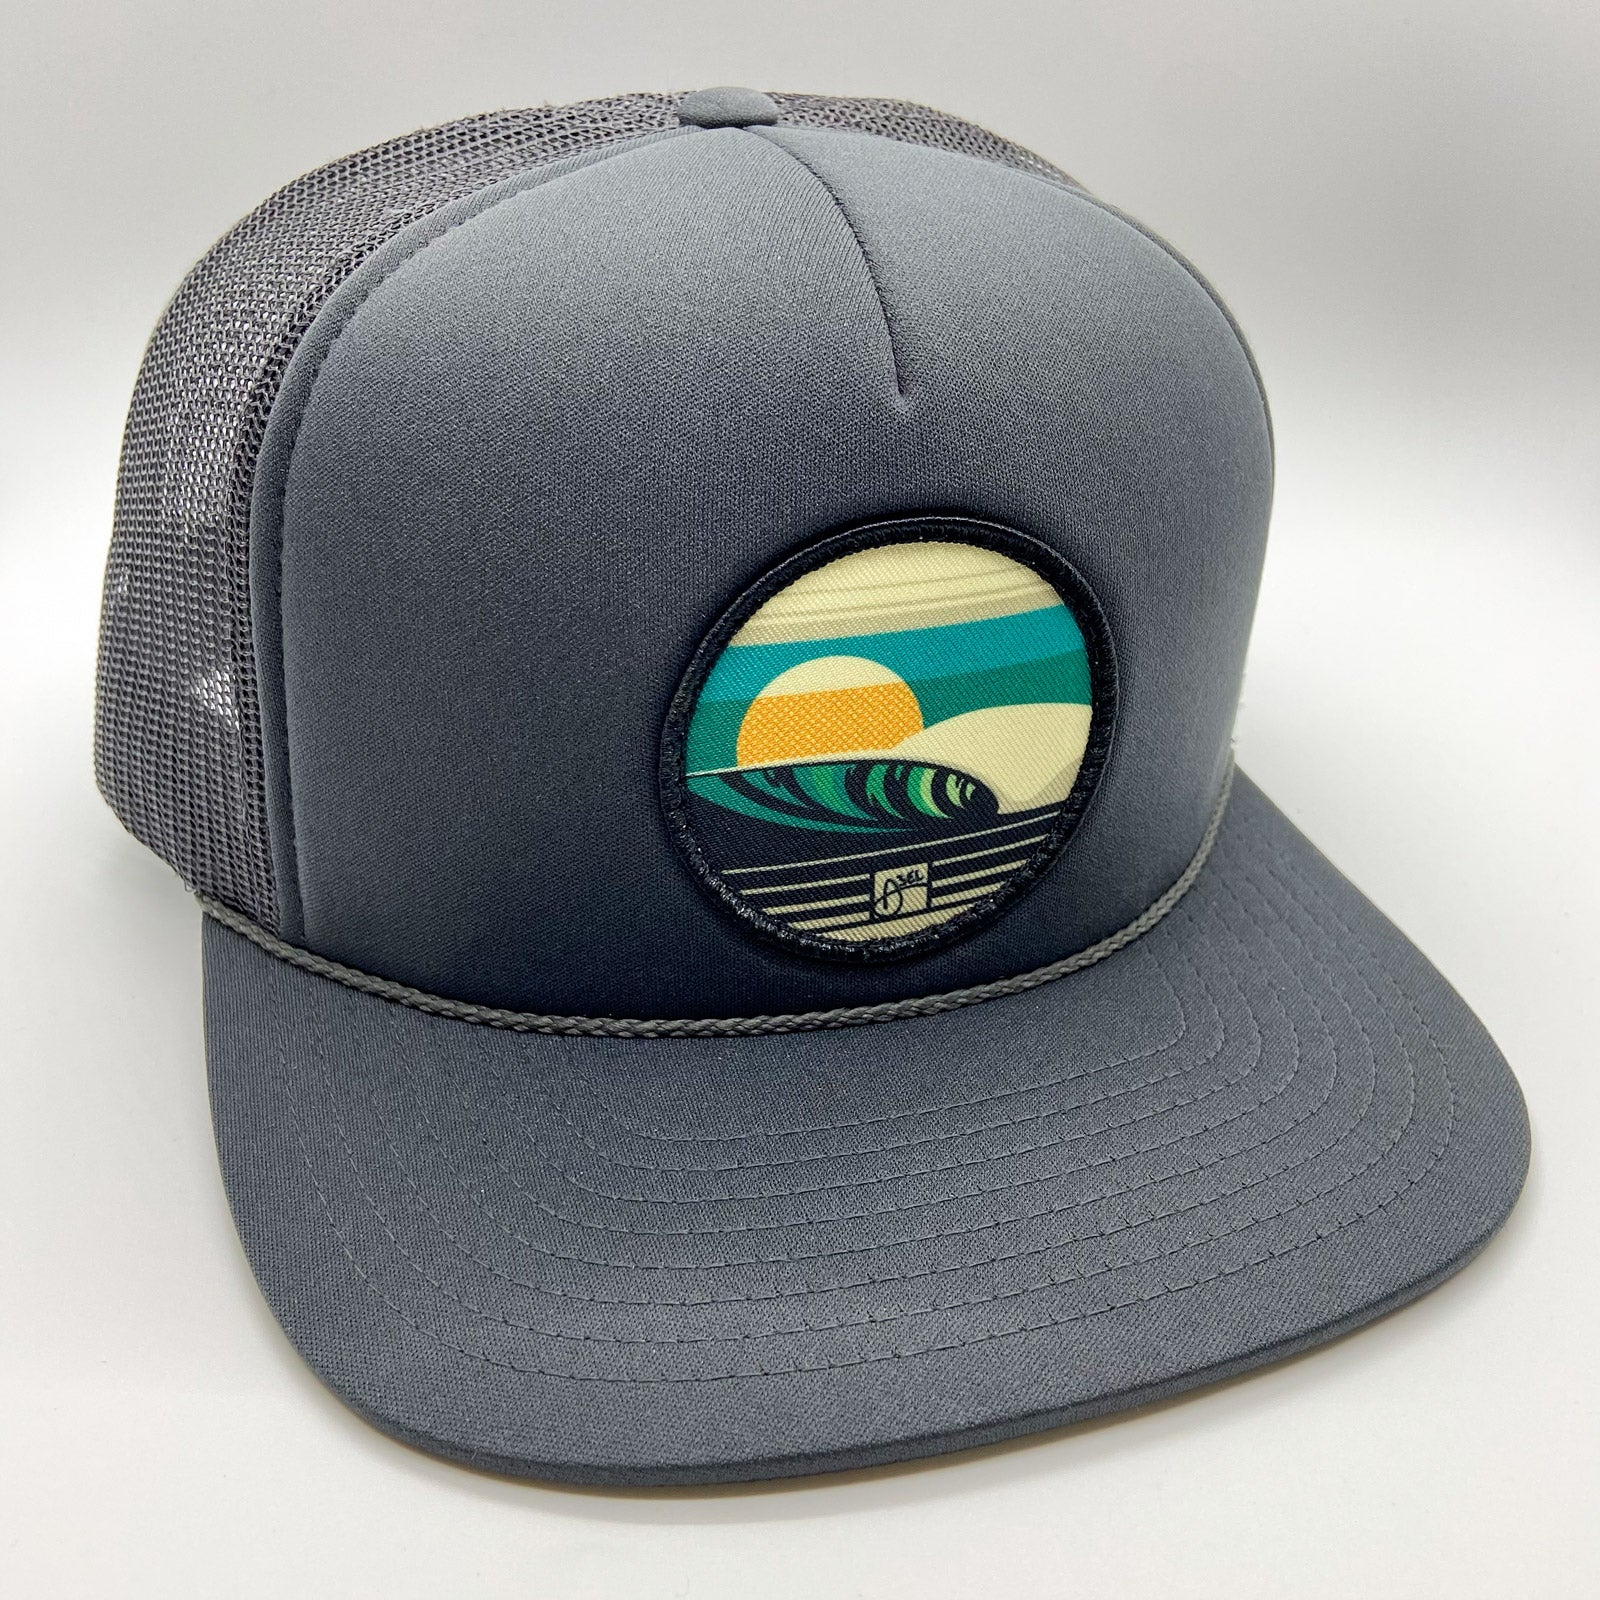 Hat: Ola Verde Trucker (SOLD OUT)